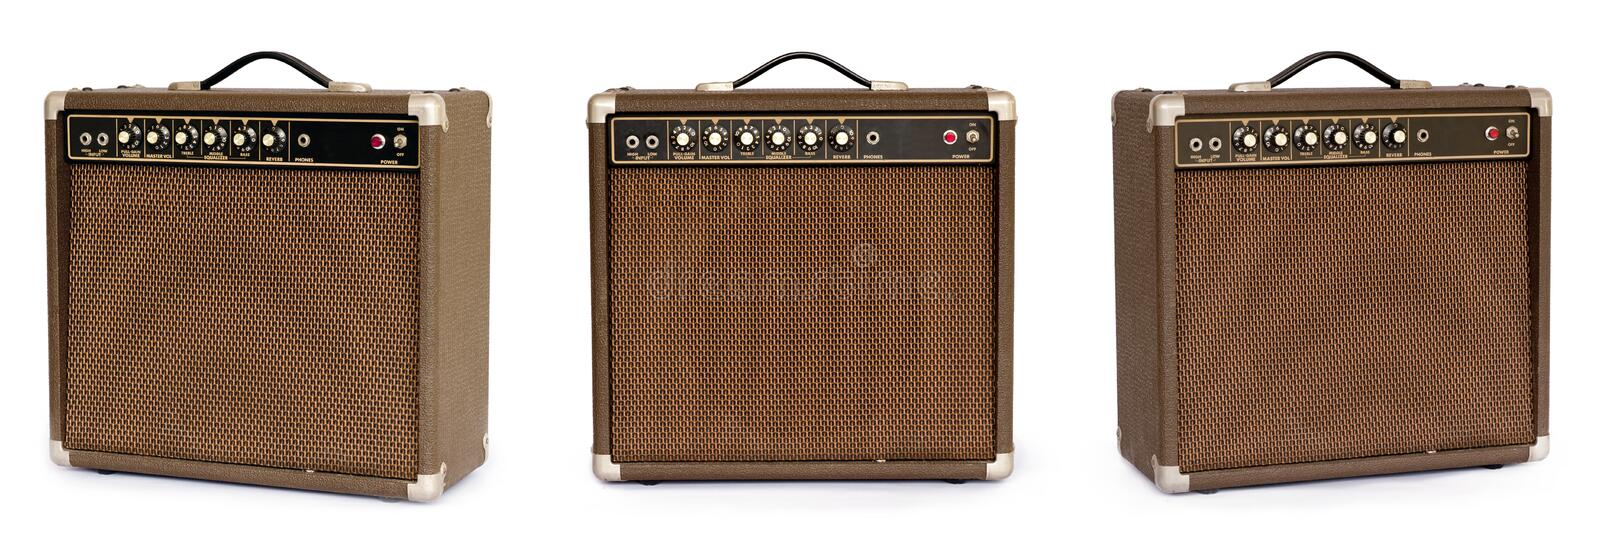 Brown electric guitar amplifier royalty free stock images